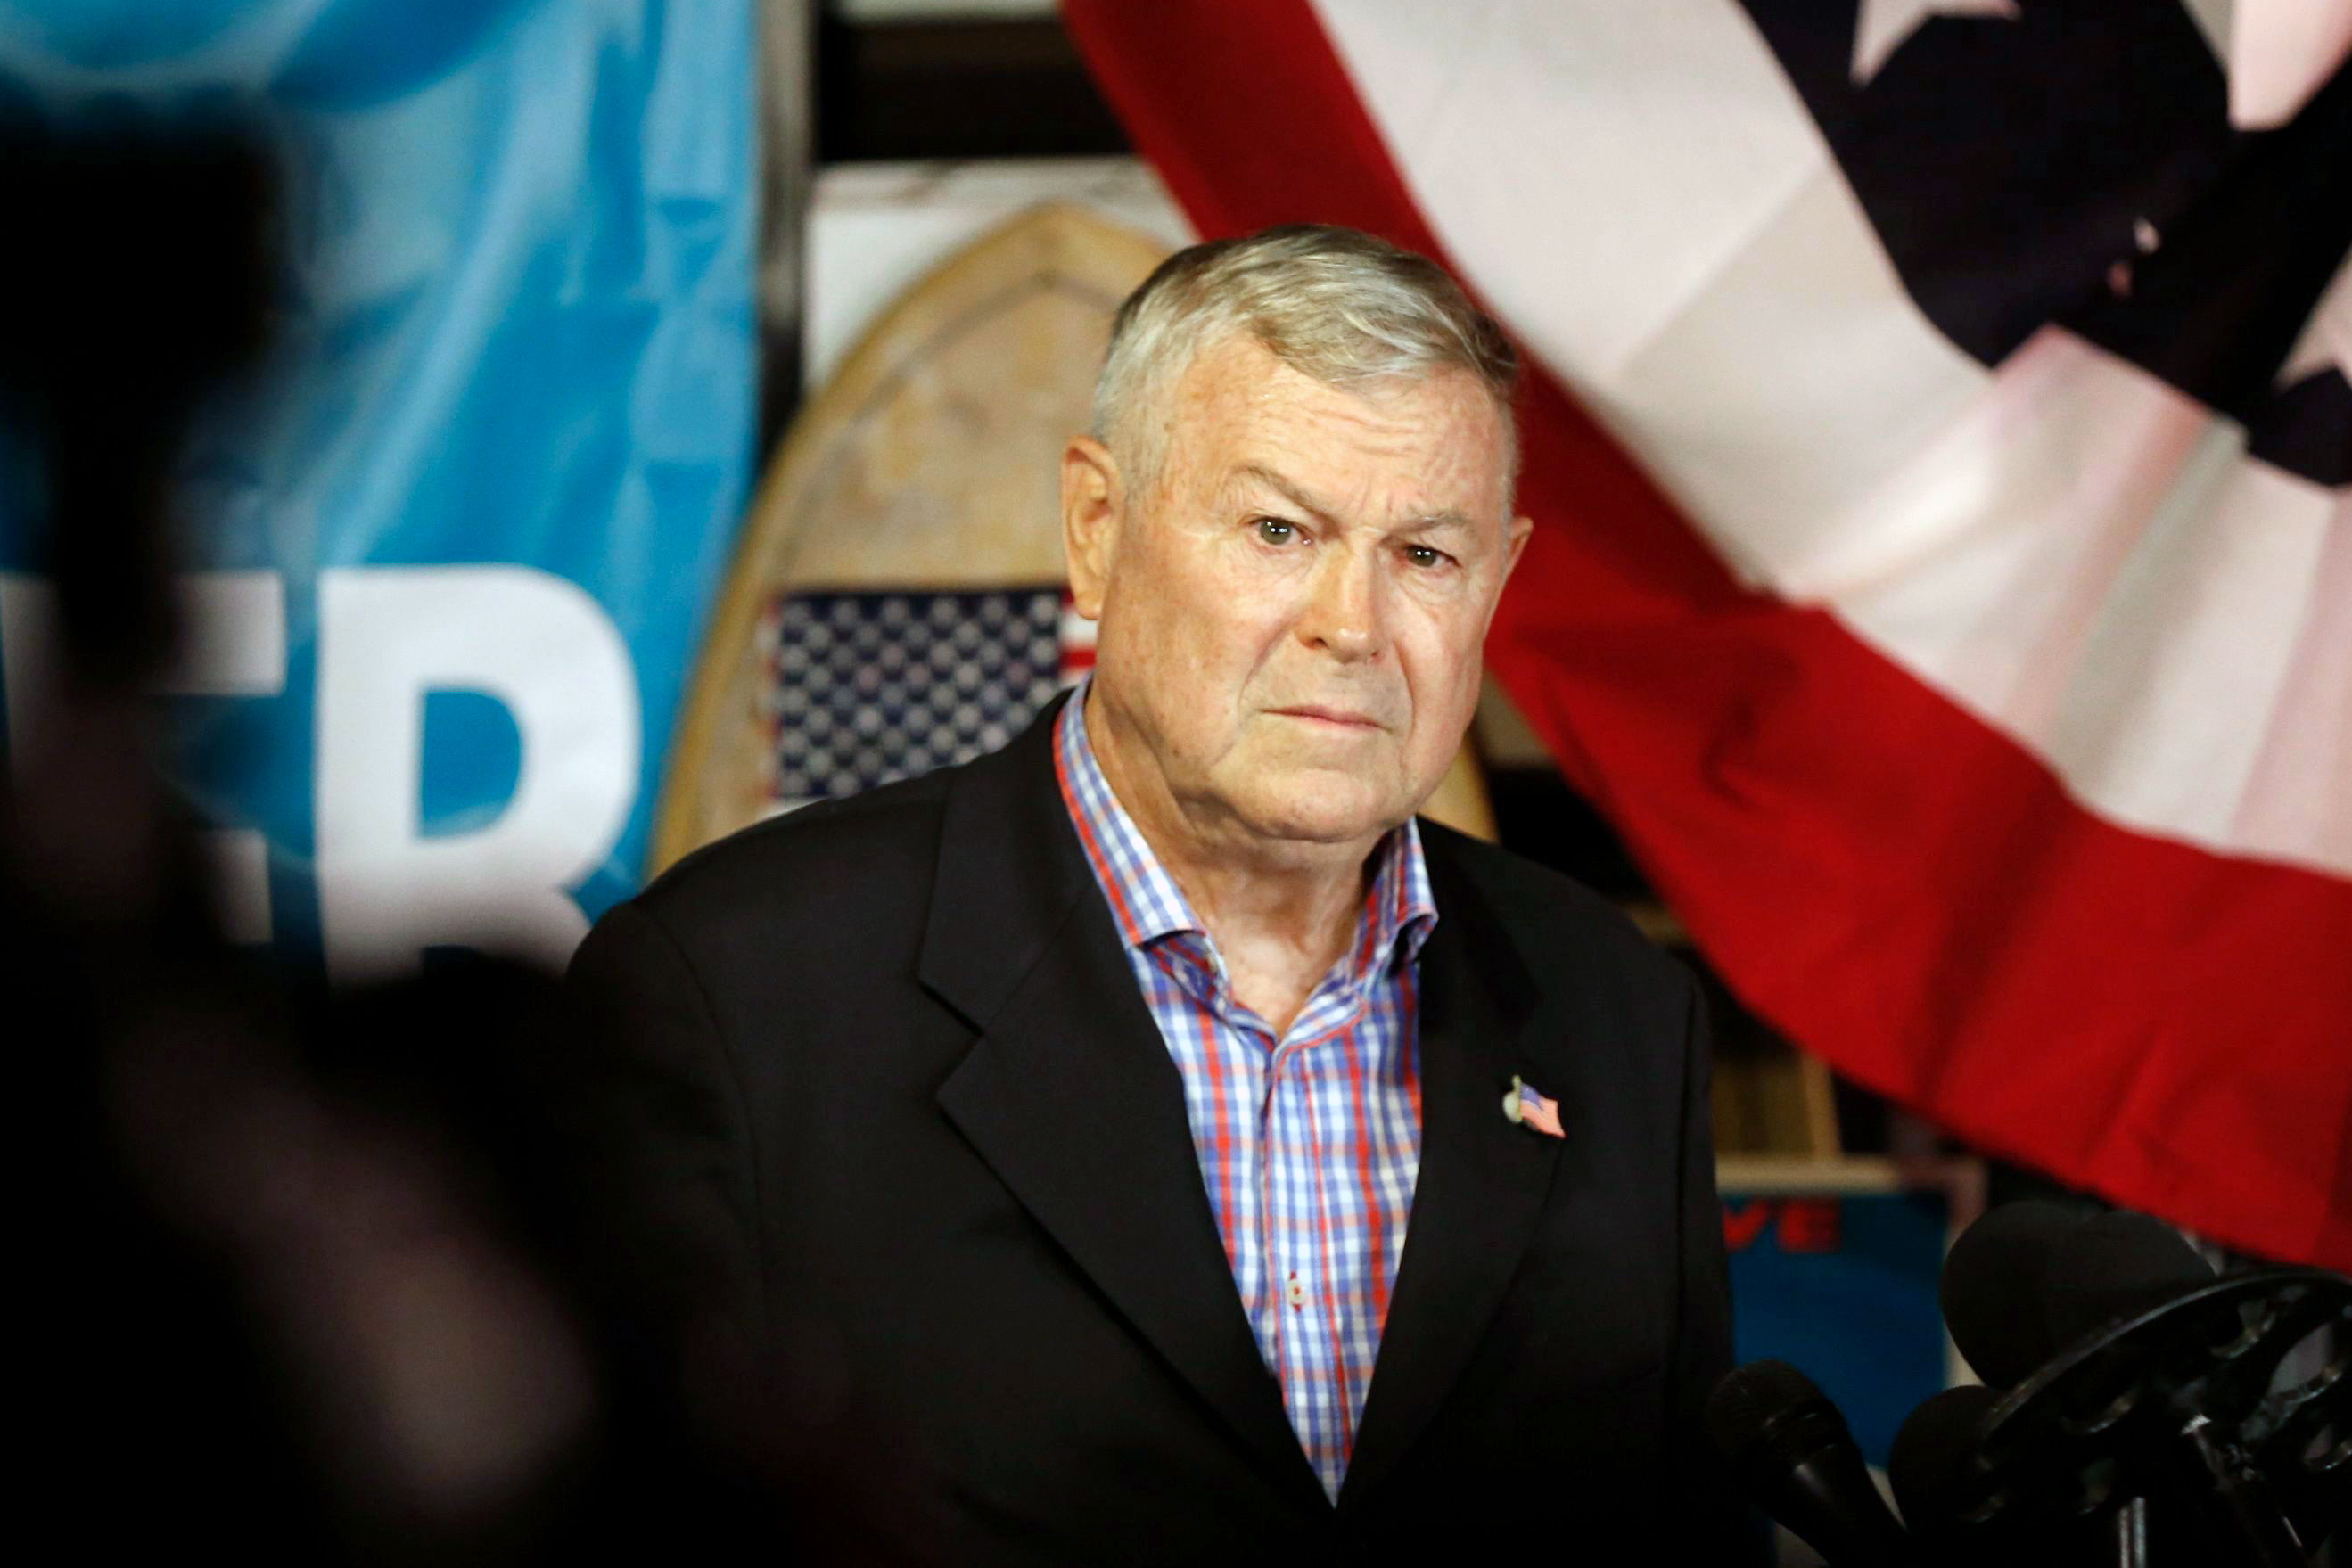 Putin's Favorite Congressman, Dana Rohrabacher, on the Verge of Ouster in California